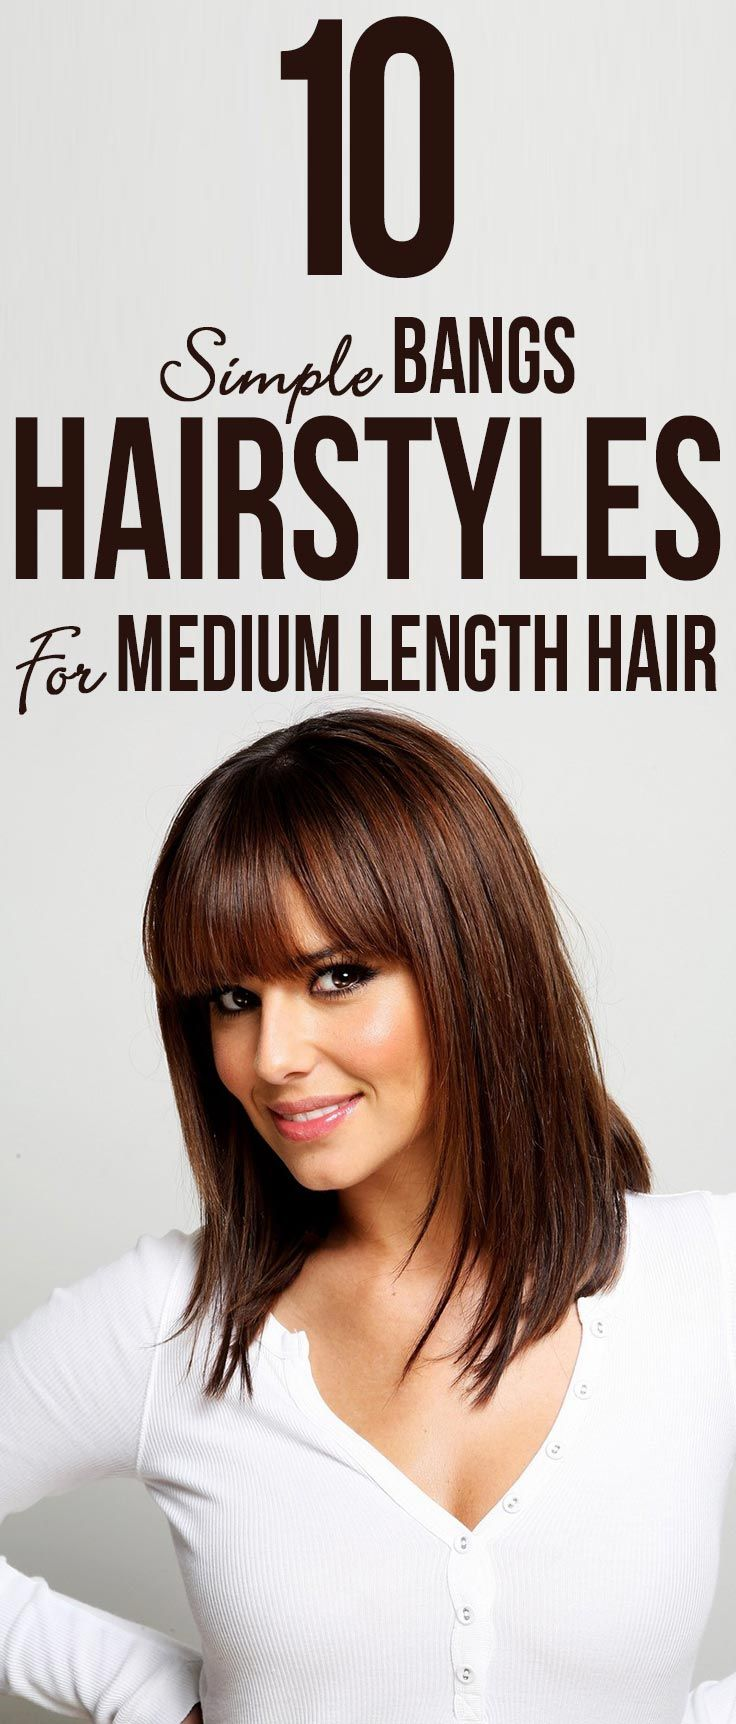 Hairstyles  - Magazine cover